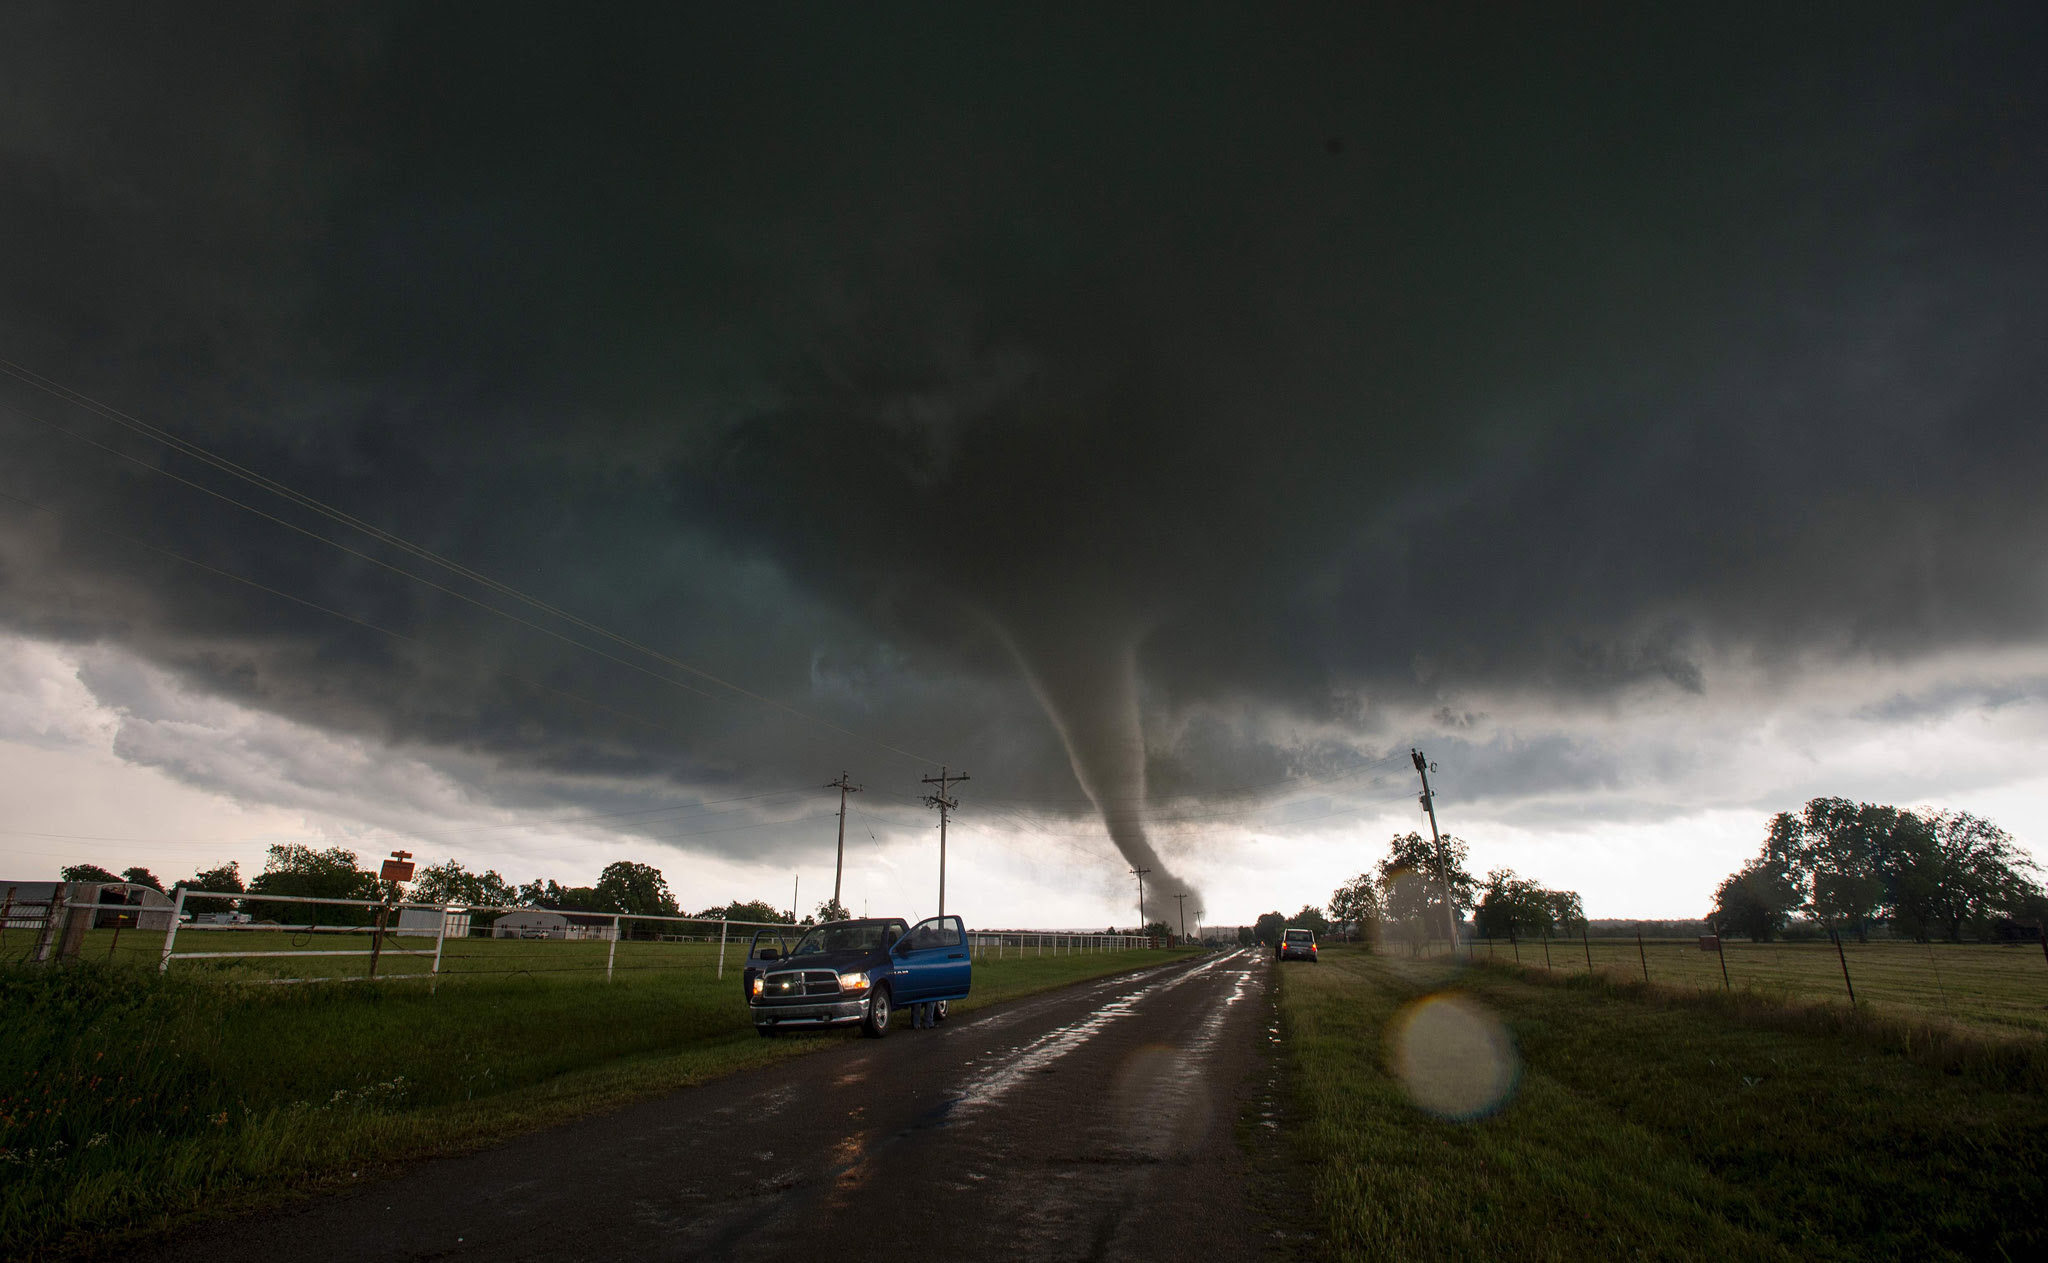 "Vehicles stop on the side of a road as a...Vehicles stop on the side of a road as a tornado rips through a residential area after touching down south of Wynnewood, Oklahoma on May 09, 2016.  The tornado touched down quickly and destroyed an unknown number of structures before a series of other twisters riddled the area. One person is confirmed dead. == RESTRICTED TO EDITORIAL USE  / MANDATORY CREDIT:  ""AFP PHOTO / HANDOUT / Josh EDELSON"" / NO MARKETING / NO ADVERTISING CAMPAIGNS /  DISTRIBUTED AS A SERVICE TO CLIENTS  / GETTY OUT =="